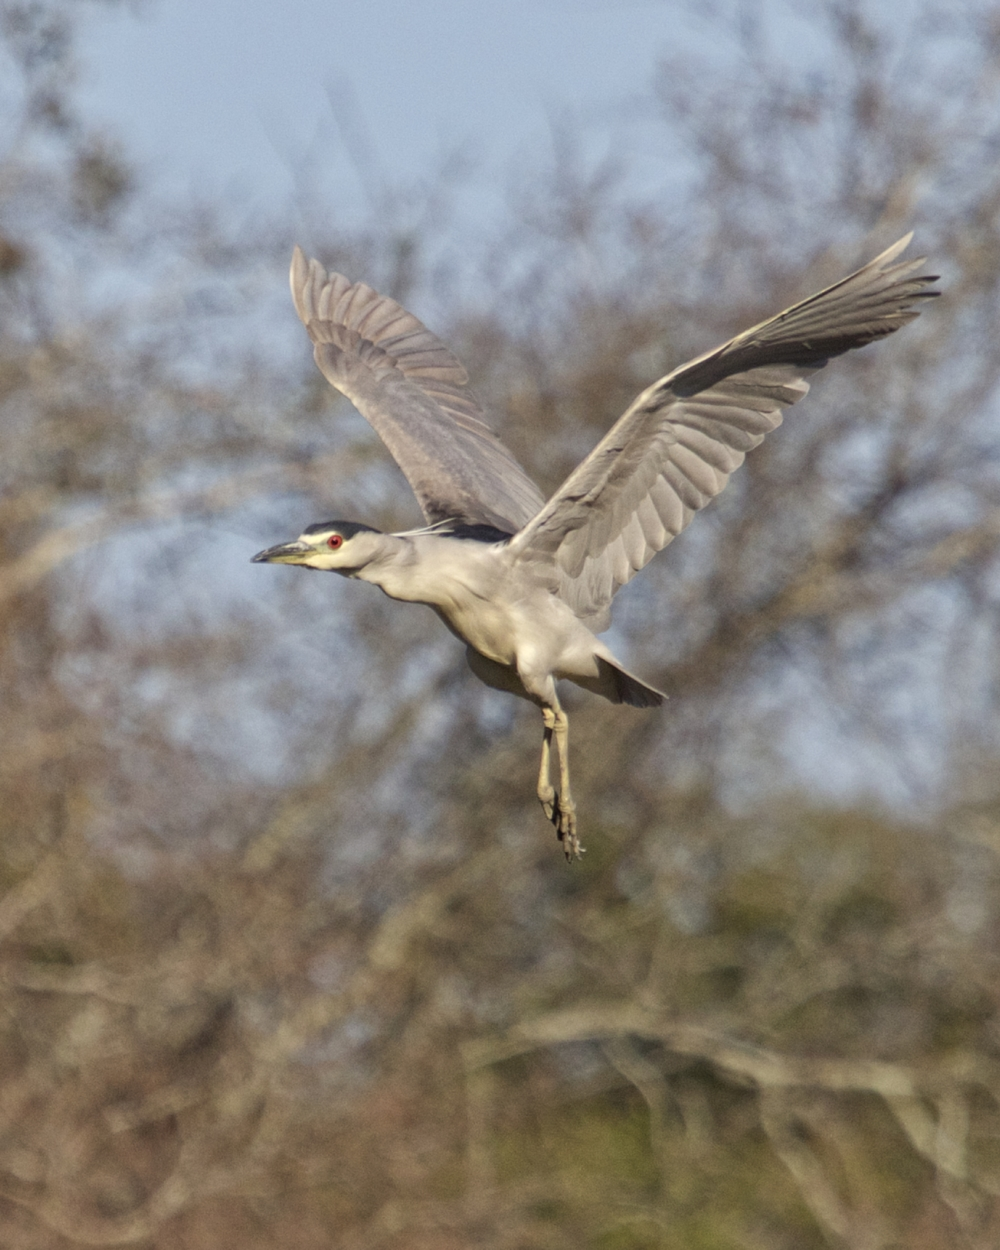 With the coast clear the herons returned to the safety of their tree one by one..